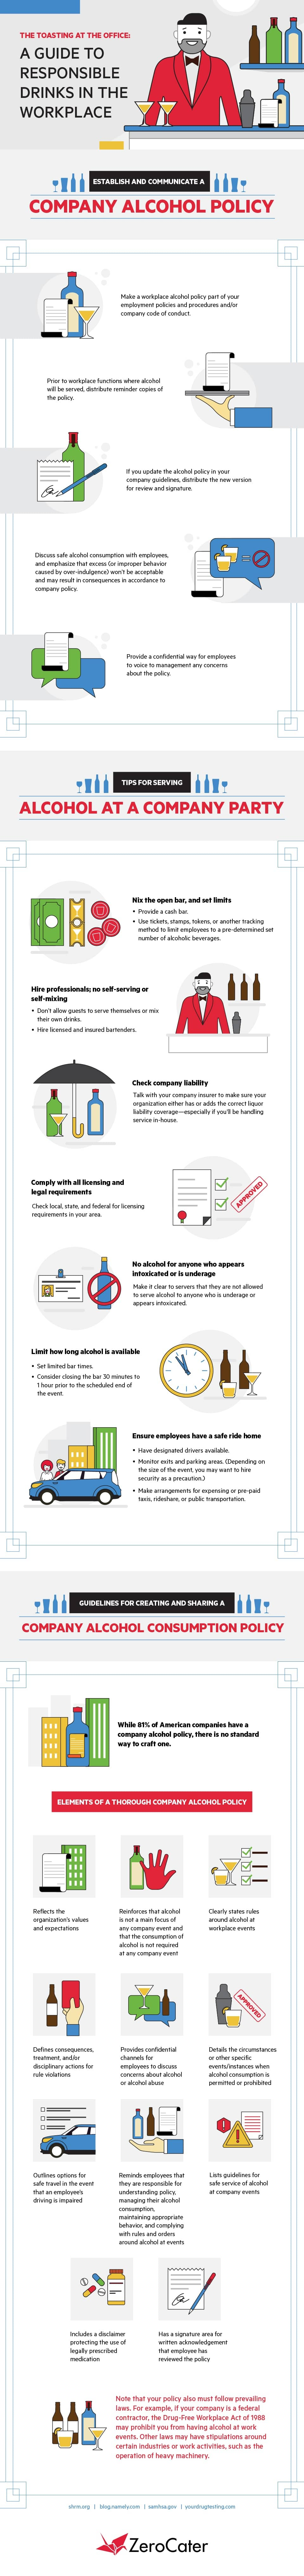 A Guide to Responsible Drinks in the Workplace infographic